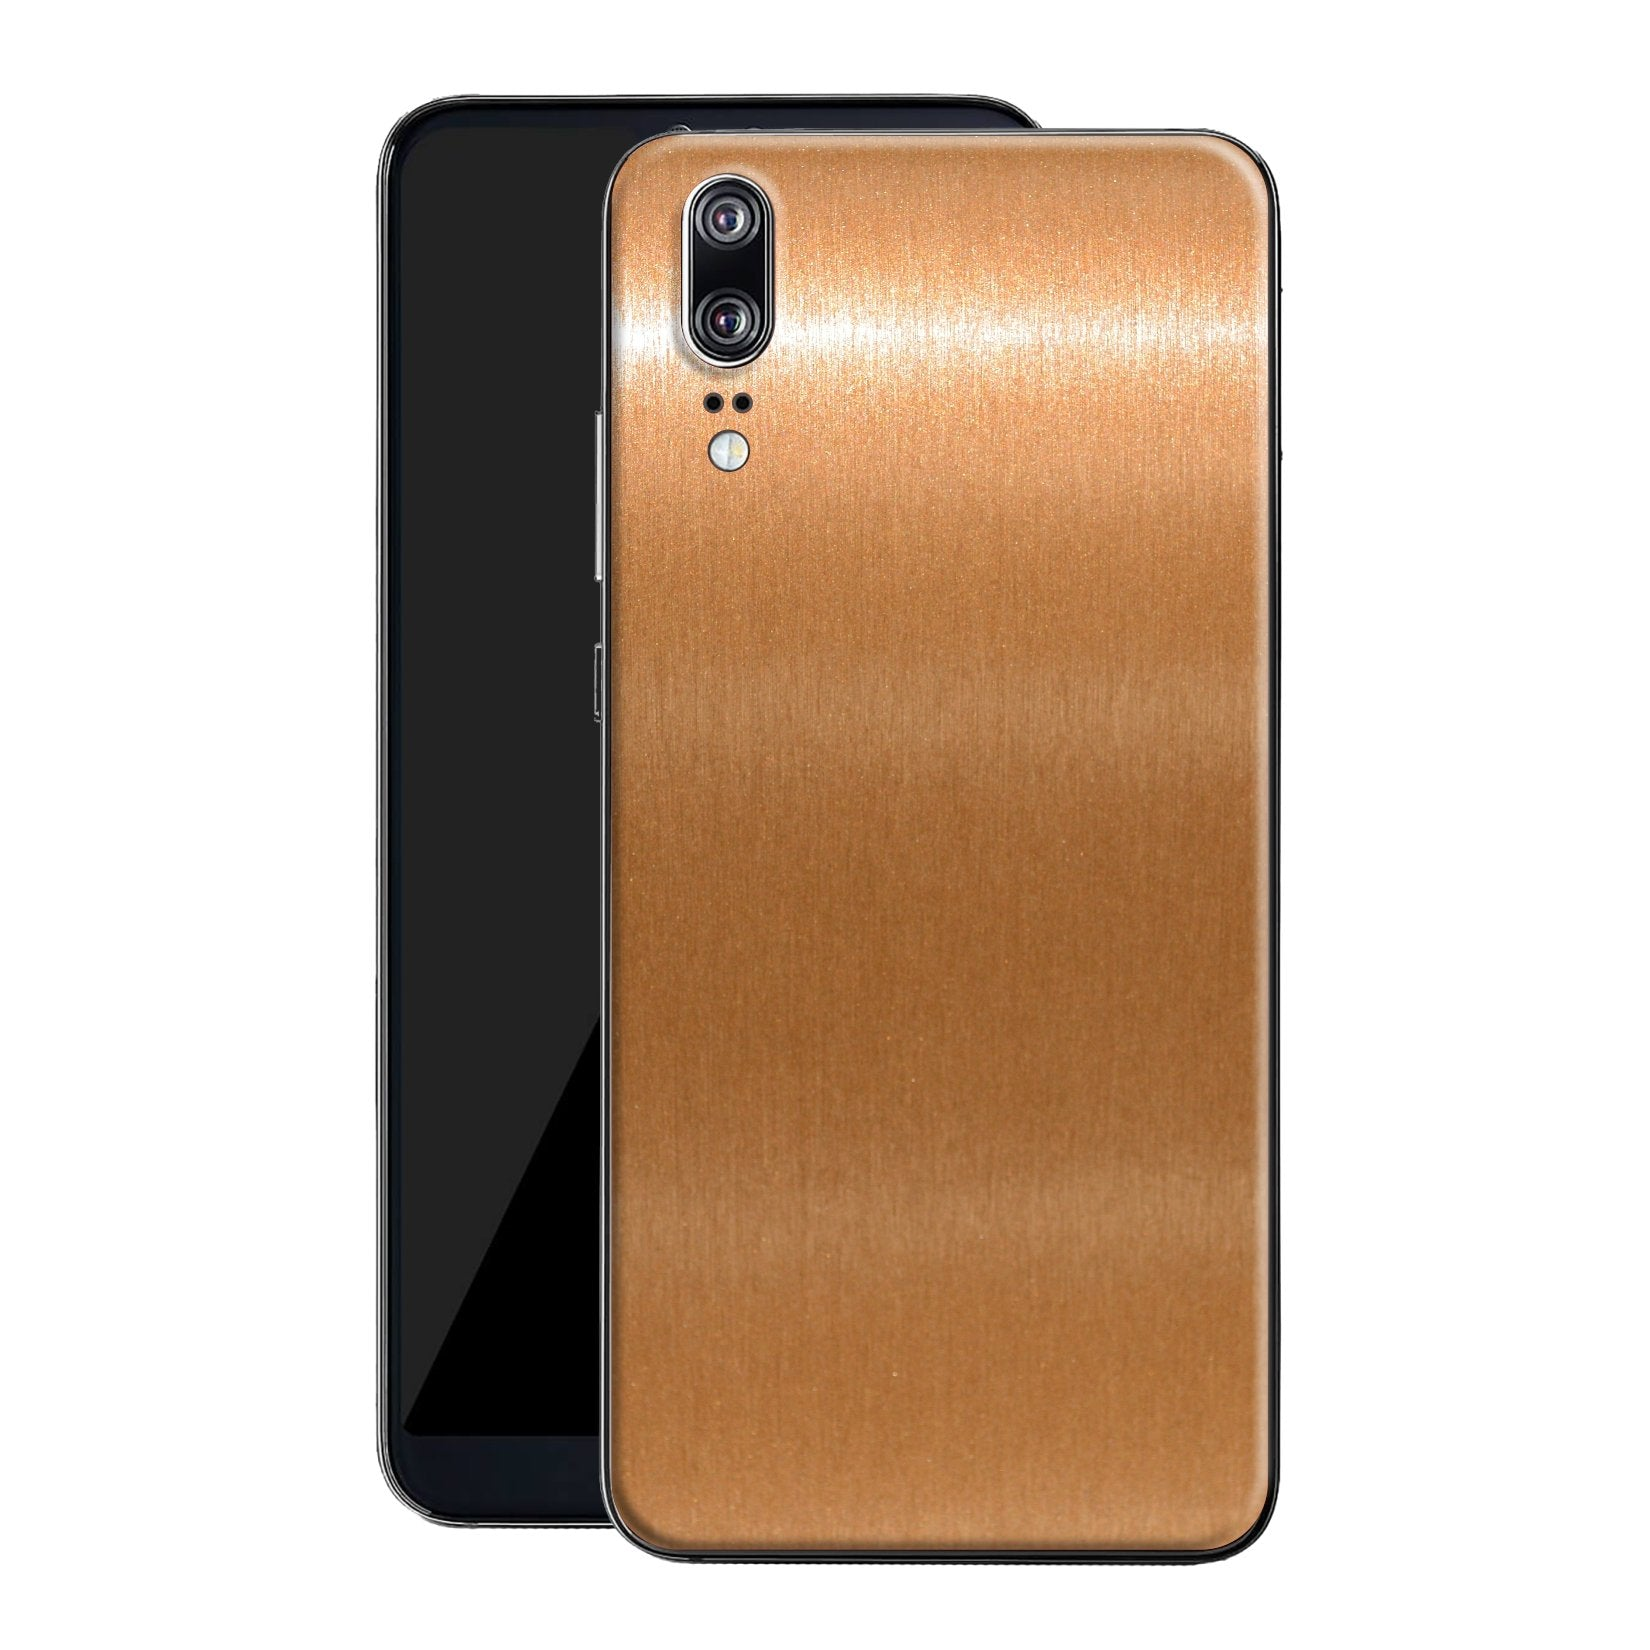 Huawei P20 Brushed Copper Metallic Metal Skin, Decal, Wrap, Protector, Cover by EasySkinz | EasySkinz.com